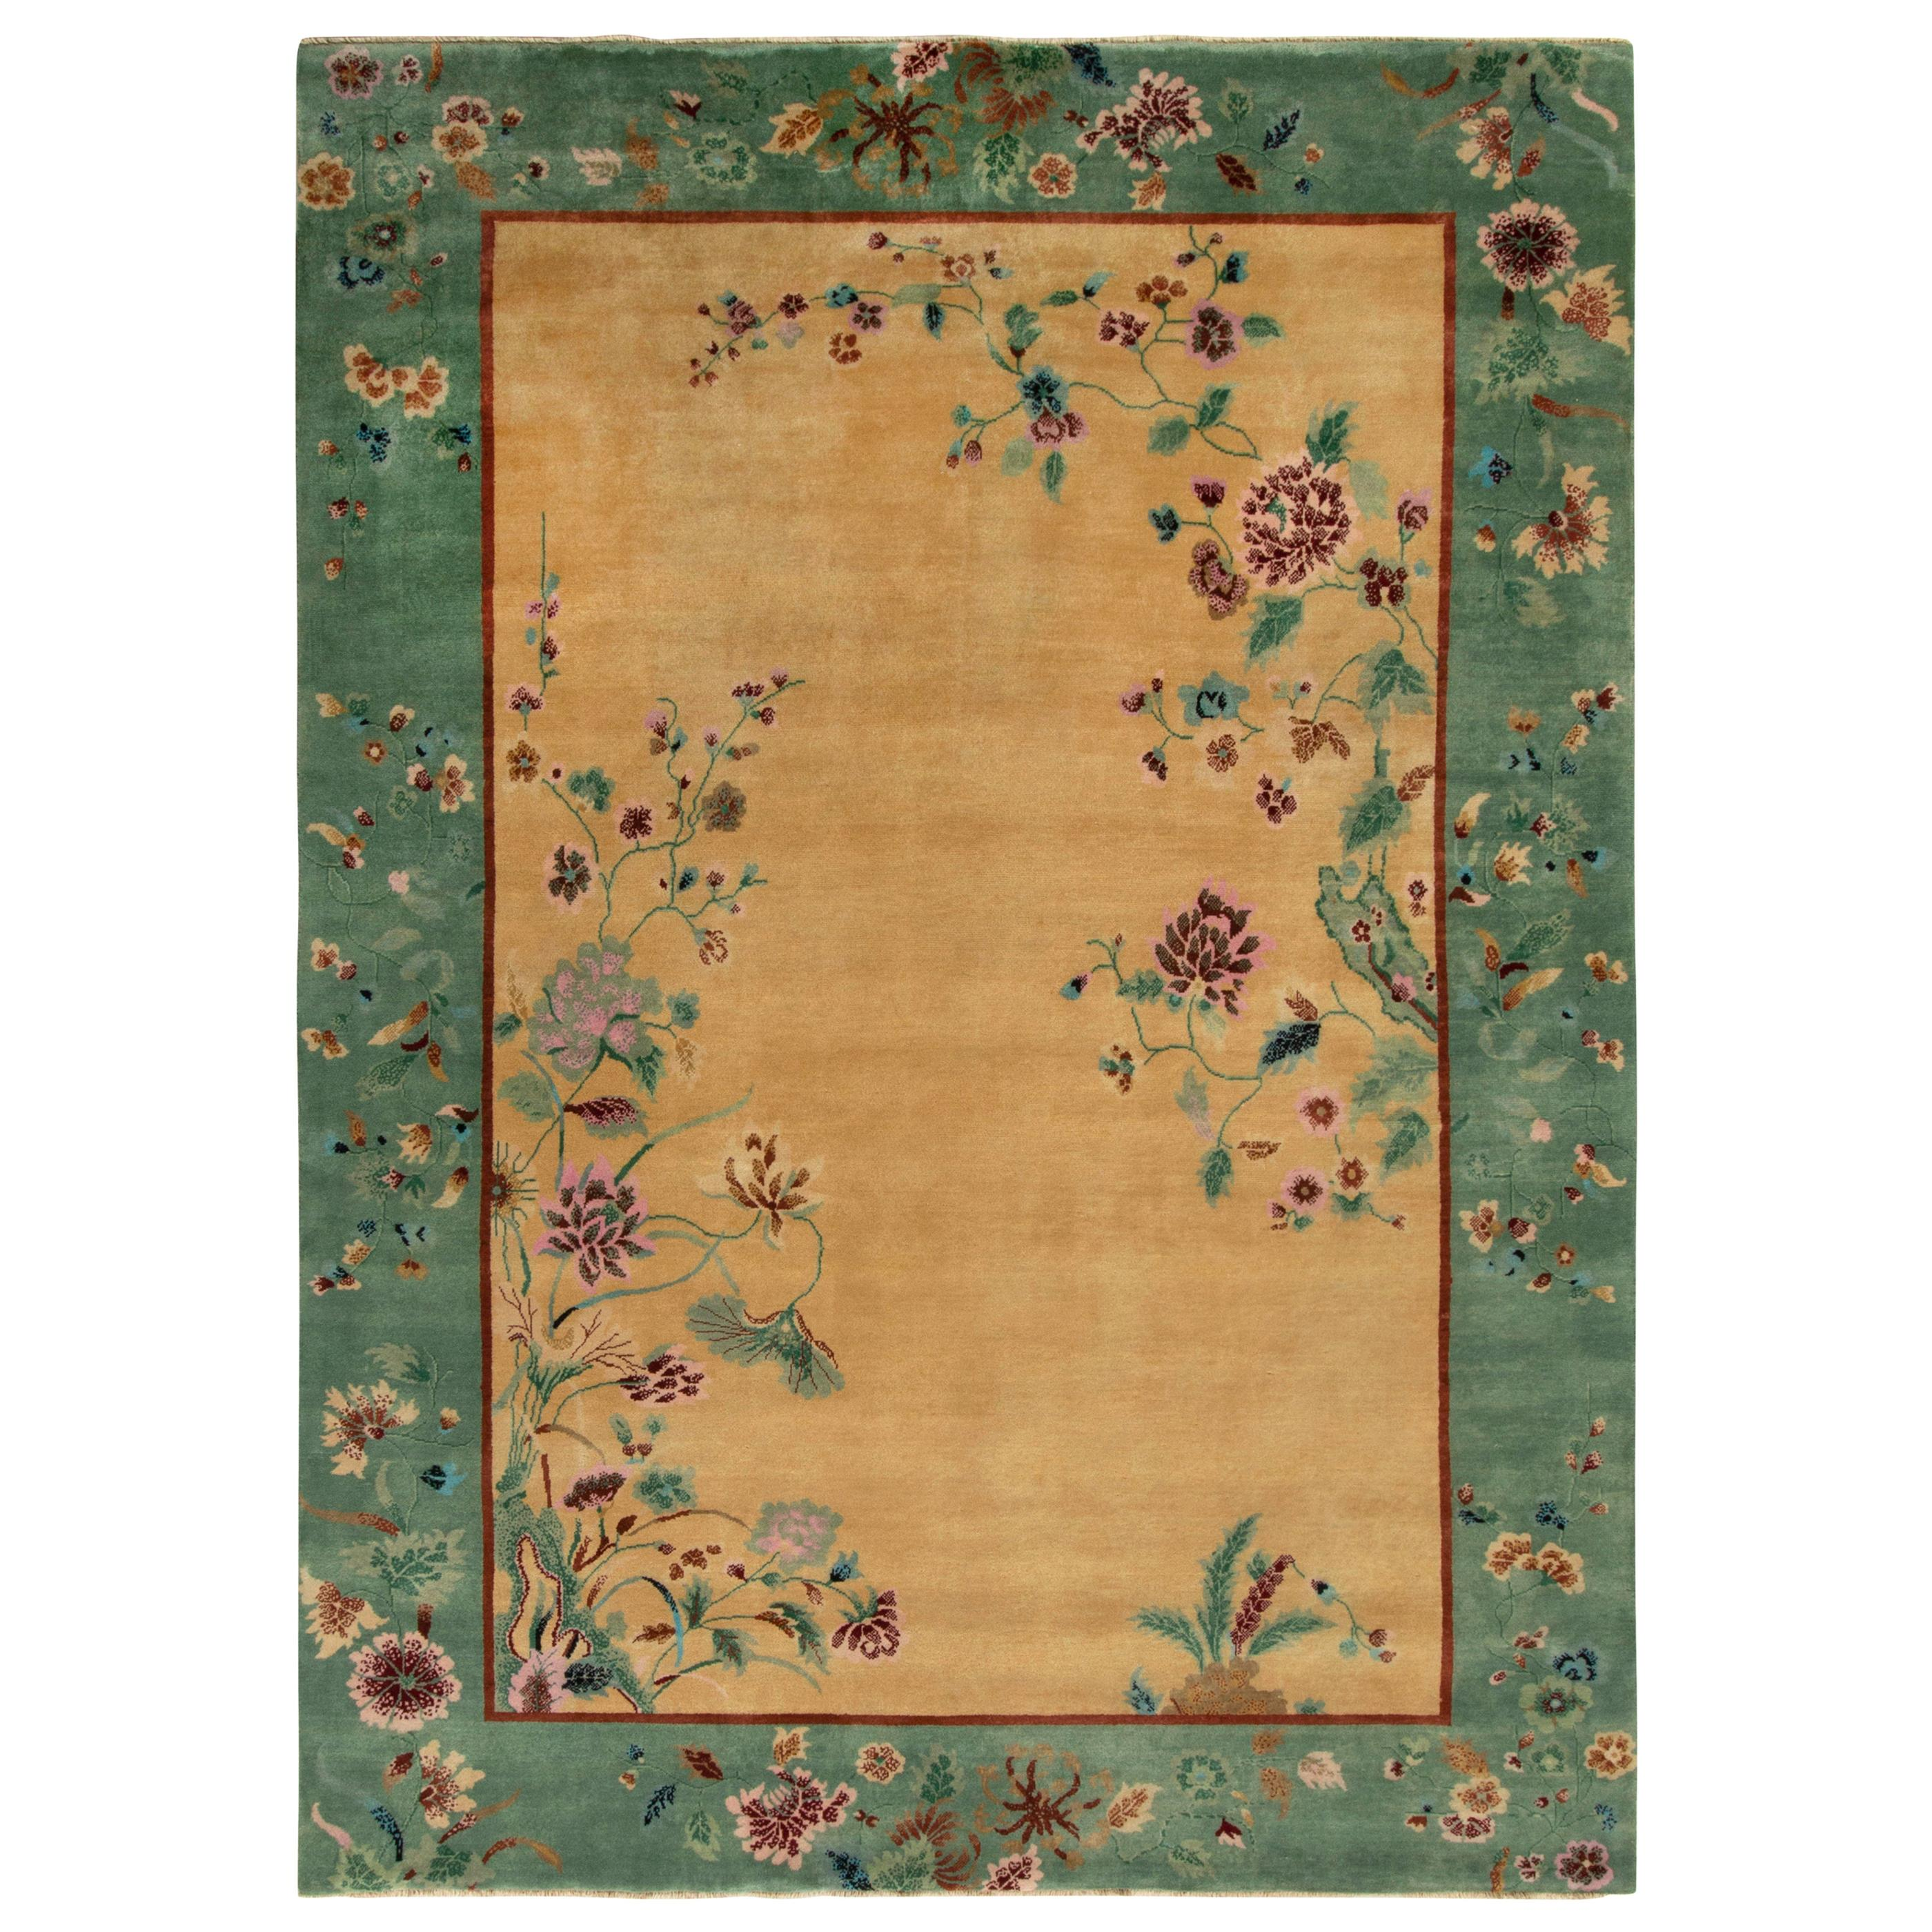 Rug & Kilim's Chinese Art Deco Style Rug in Green and Beige-Gold Floral Pattern